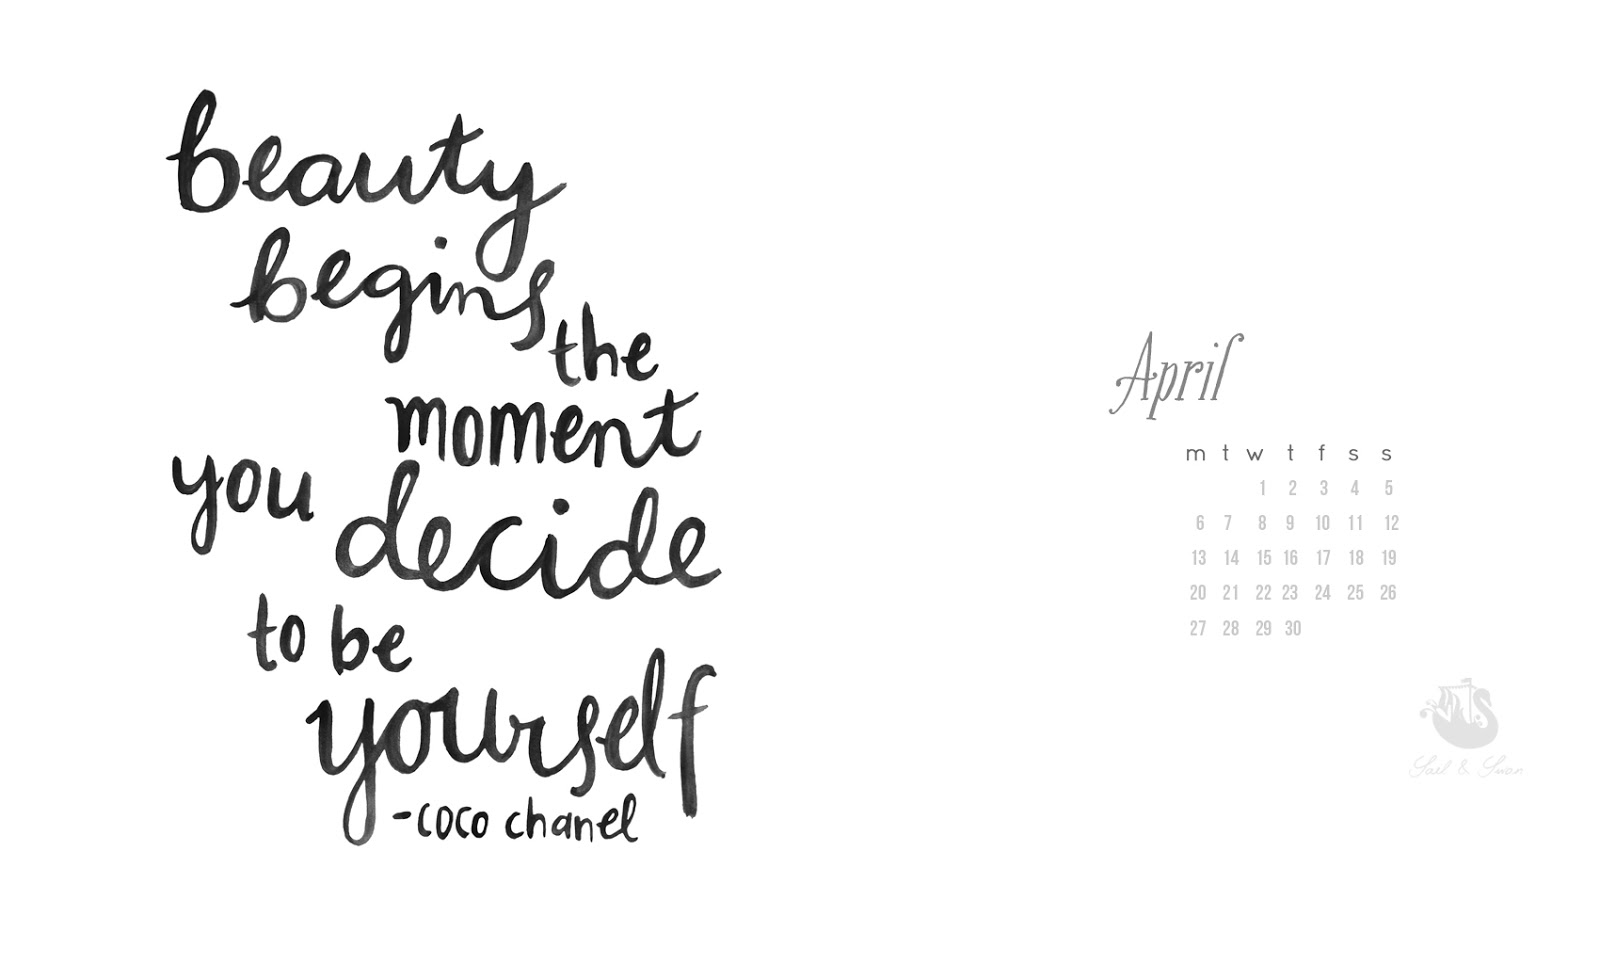 Free Brush Script Desktop Background wallpaper Sail and Swan Chanel quote inspirational design art blog artist